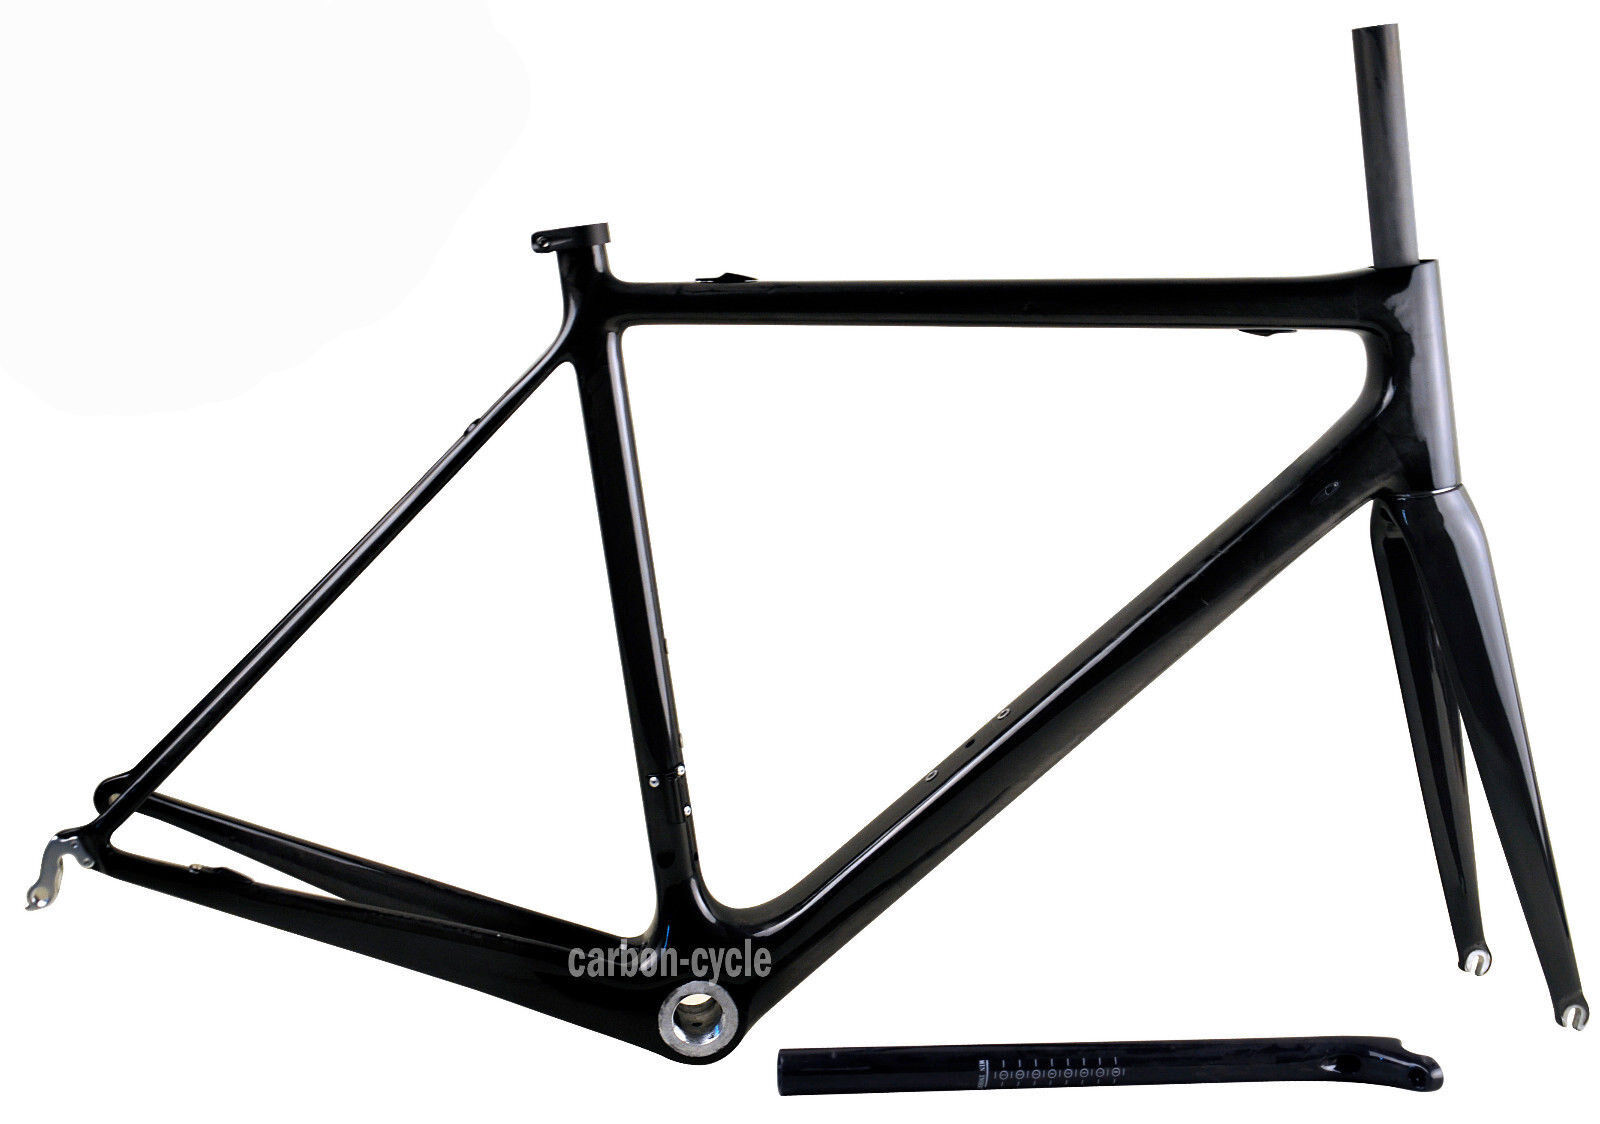 860g 56cm PF30 Carbon Frame fork seatpost Road Bike Di2 UD glossy Race 700C 25mm